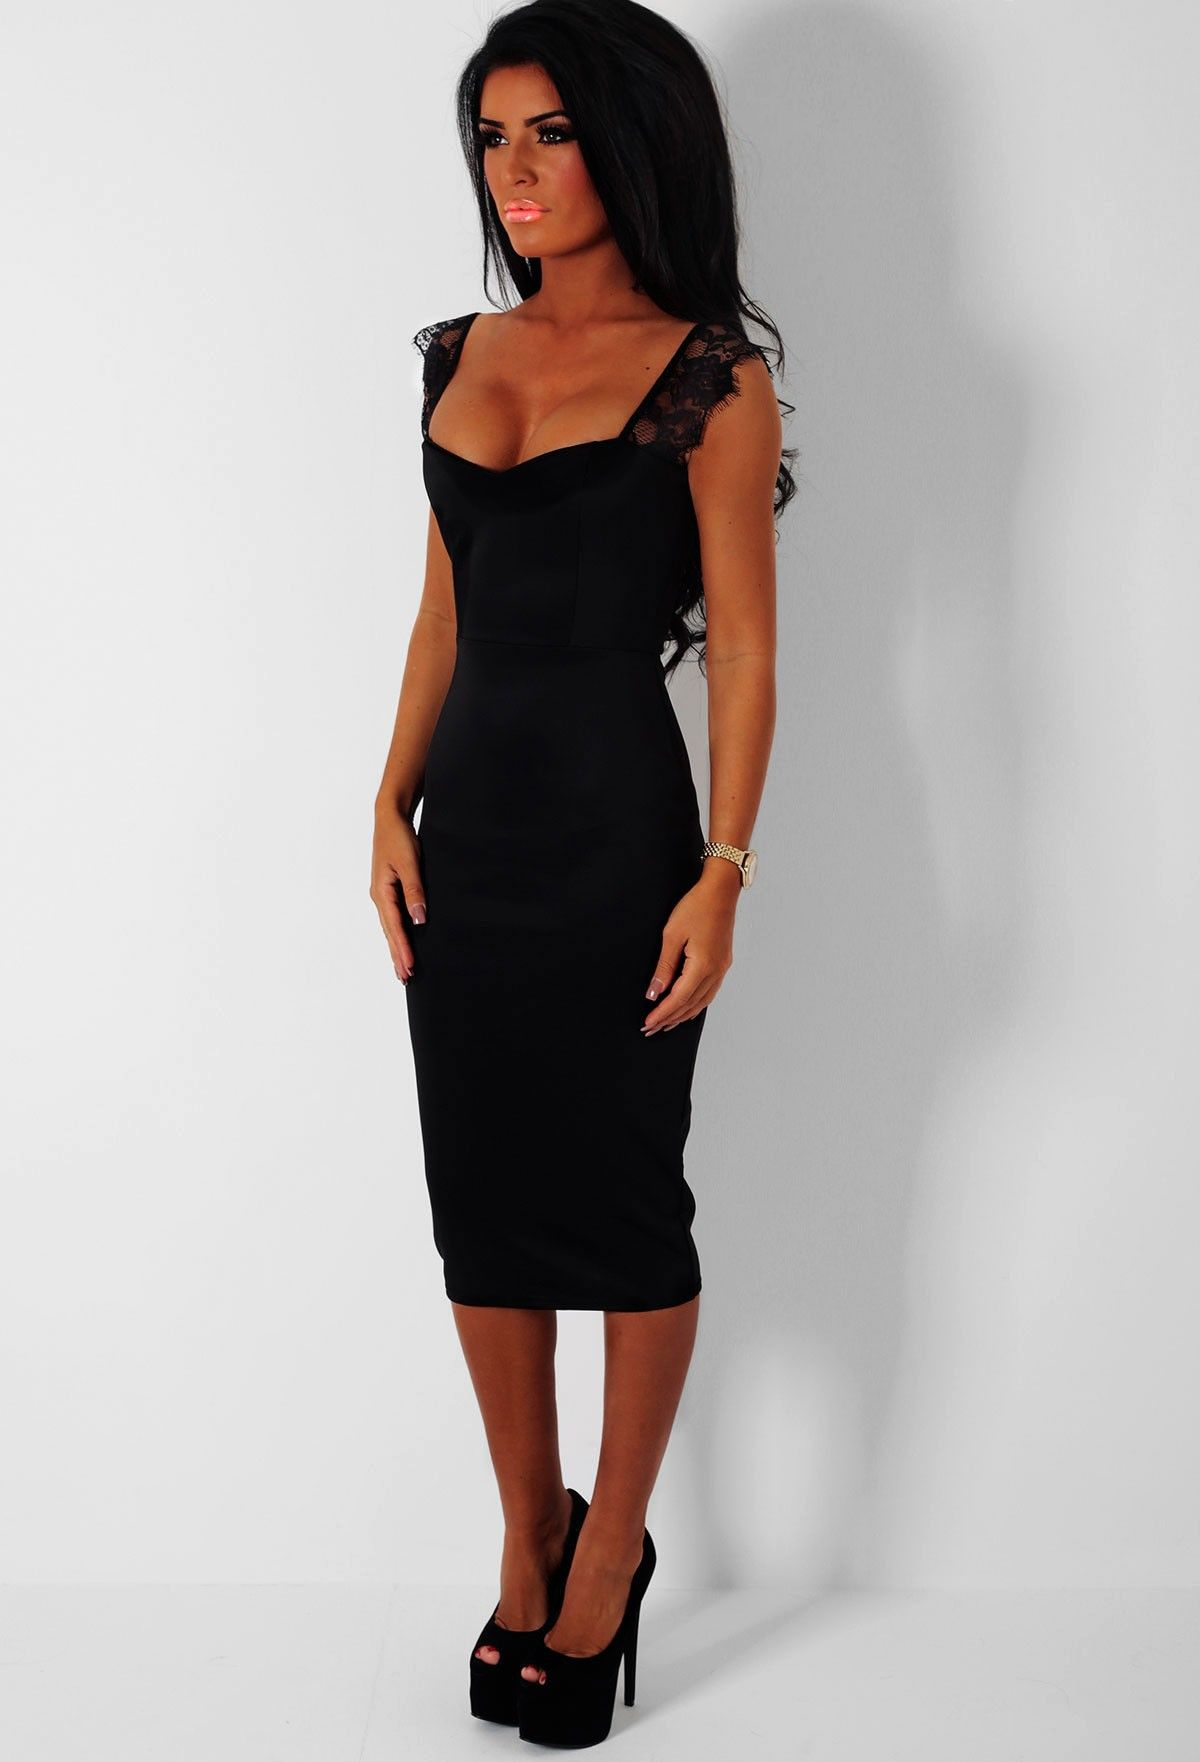 Charisma Black Lace Strap Bodycon Midi Dress | Fashion | Pinterest ...